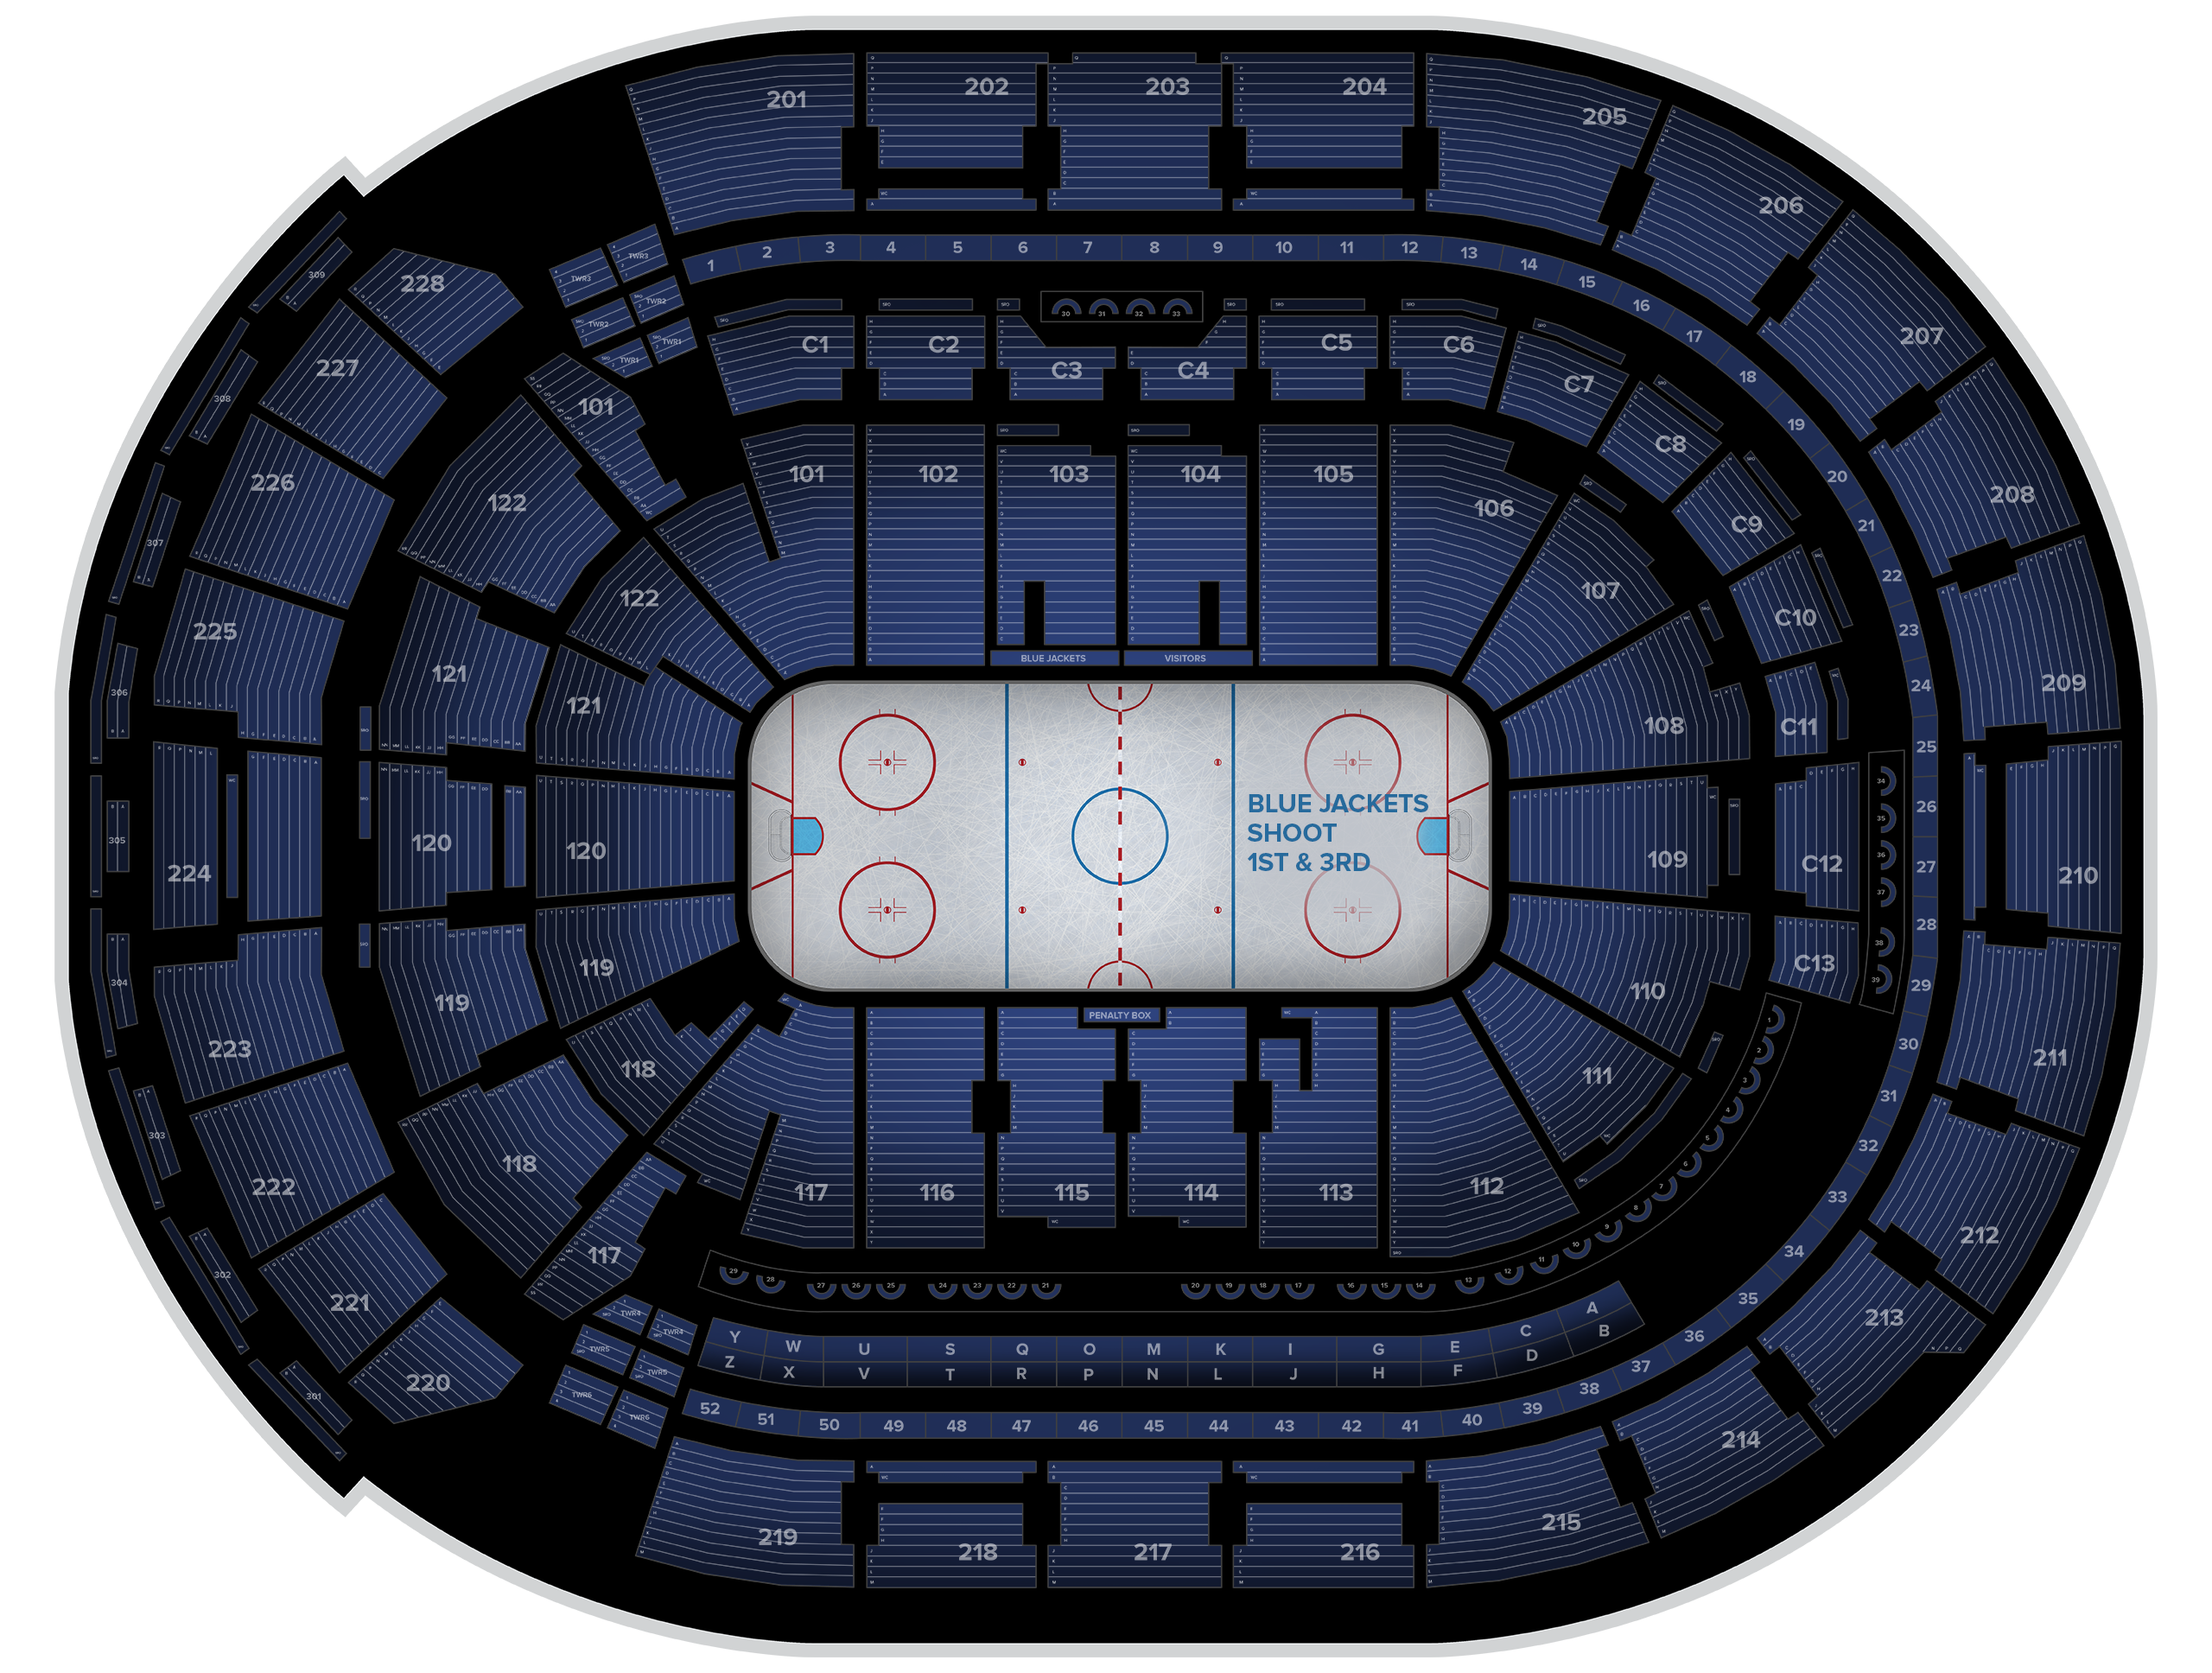 Nationwide Arena Tickets